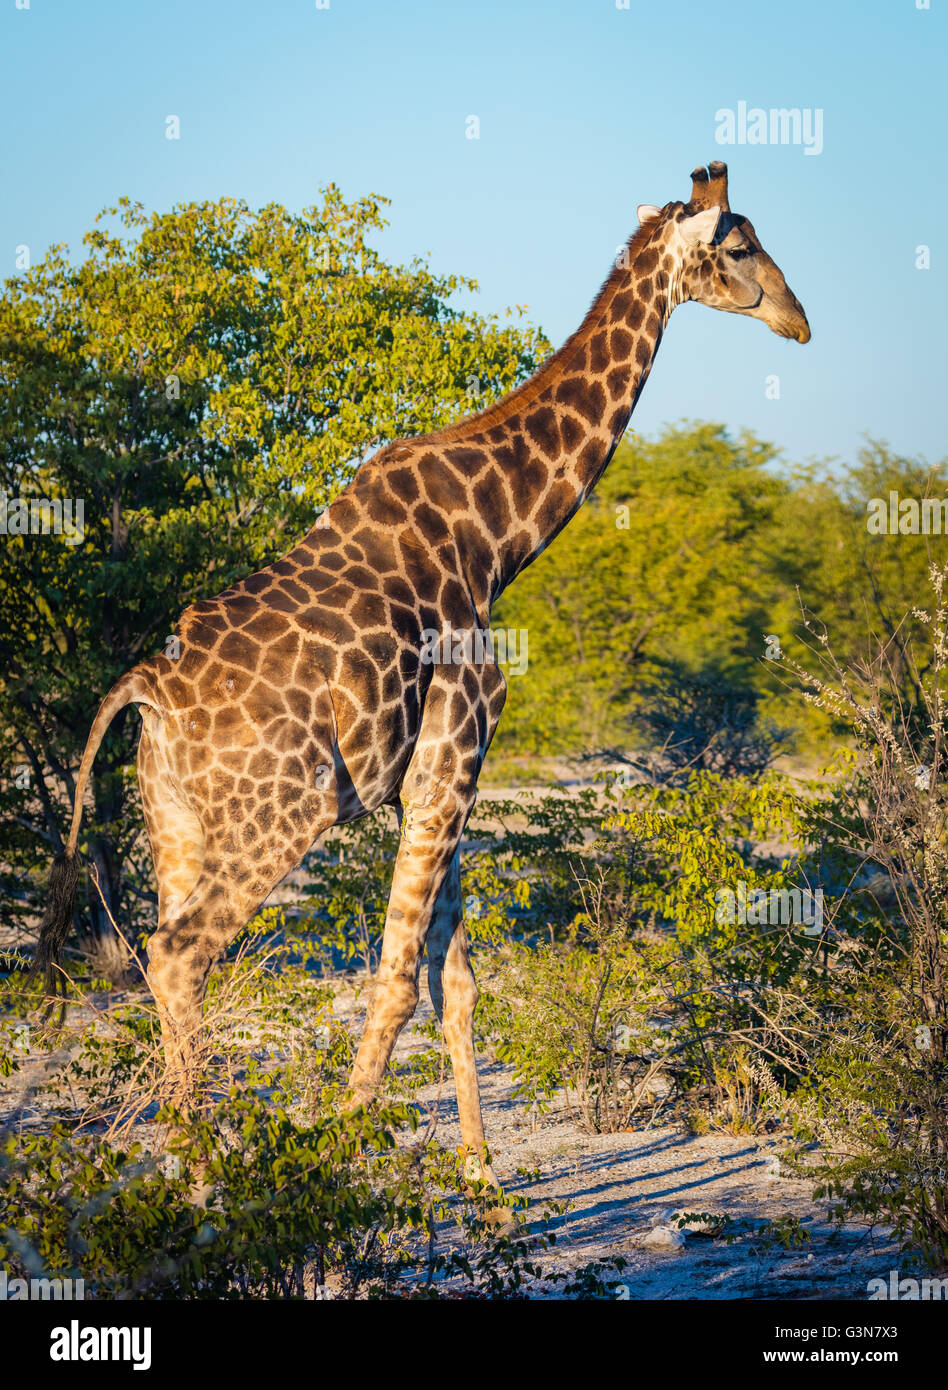 The giraffe (Giraffa camelopardalis) is an African even-toed ungulate mammal, the tallest living terrestrial animal - Stock Image